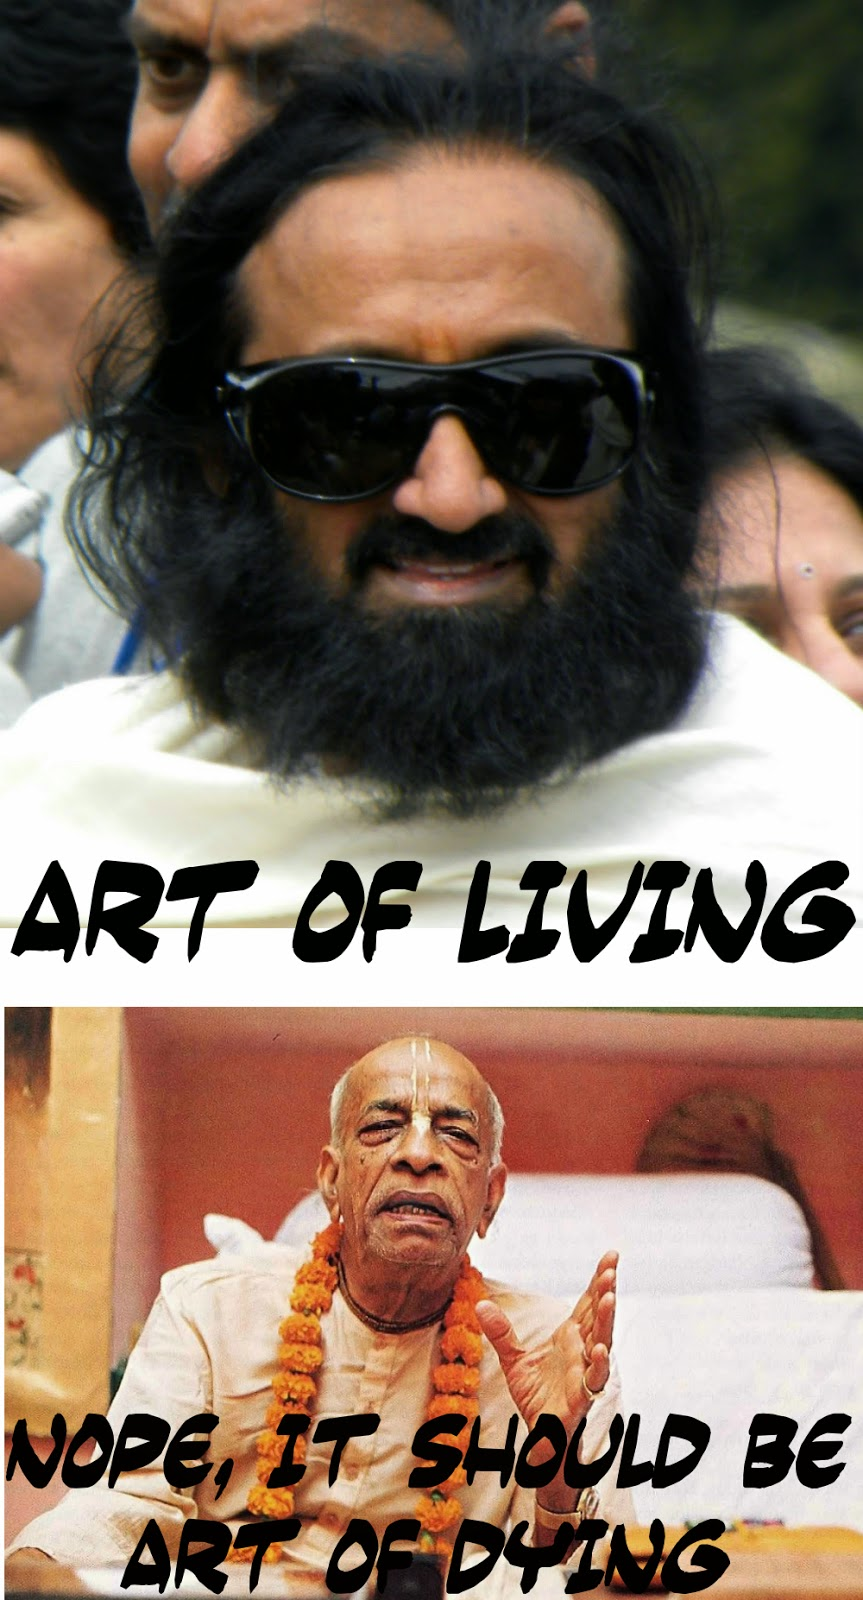 Sri Sri Ravi Shankar trolled by Srila Prabhupada, iskcon meme, art of living